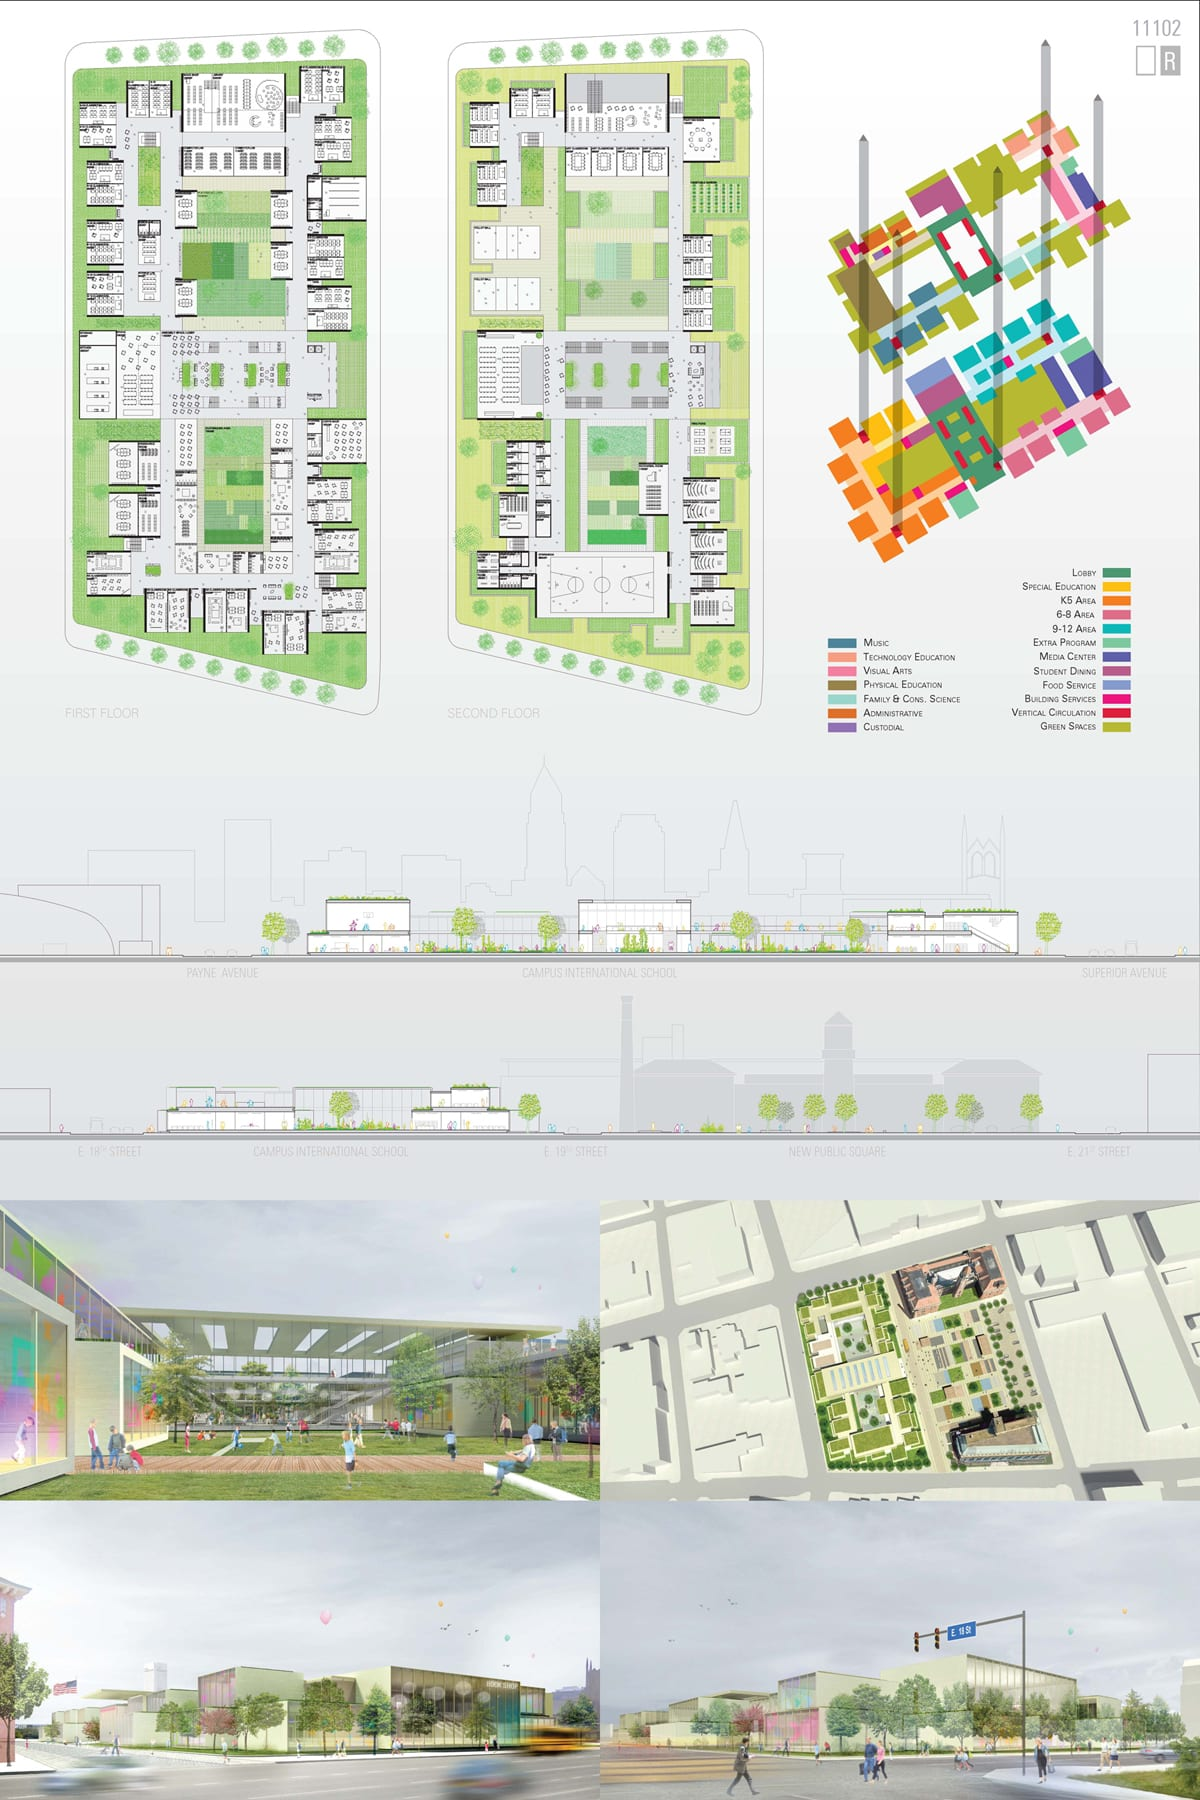 third-11-cleveland design competition - 11102 - right